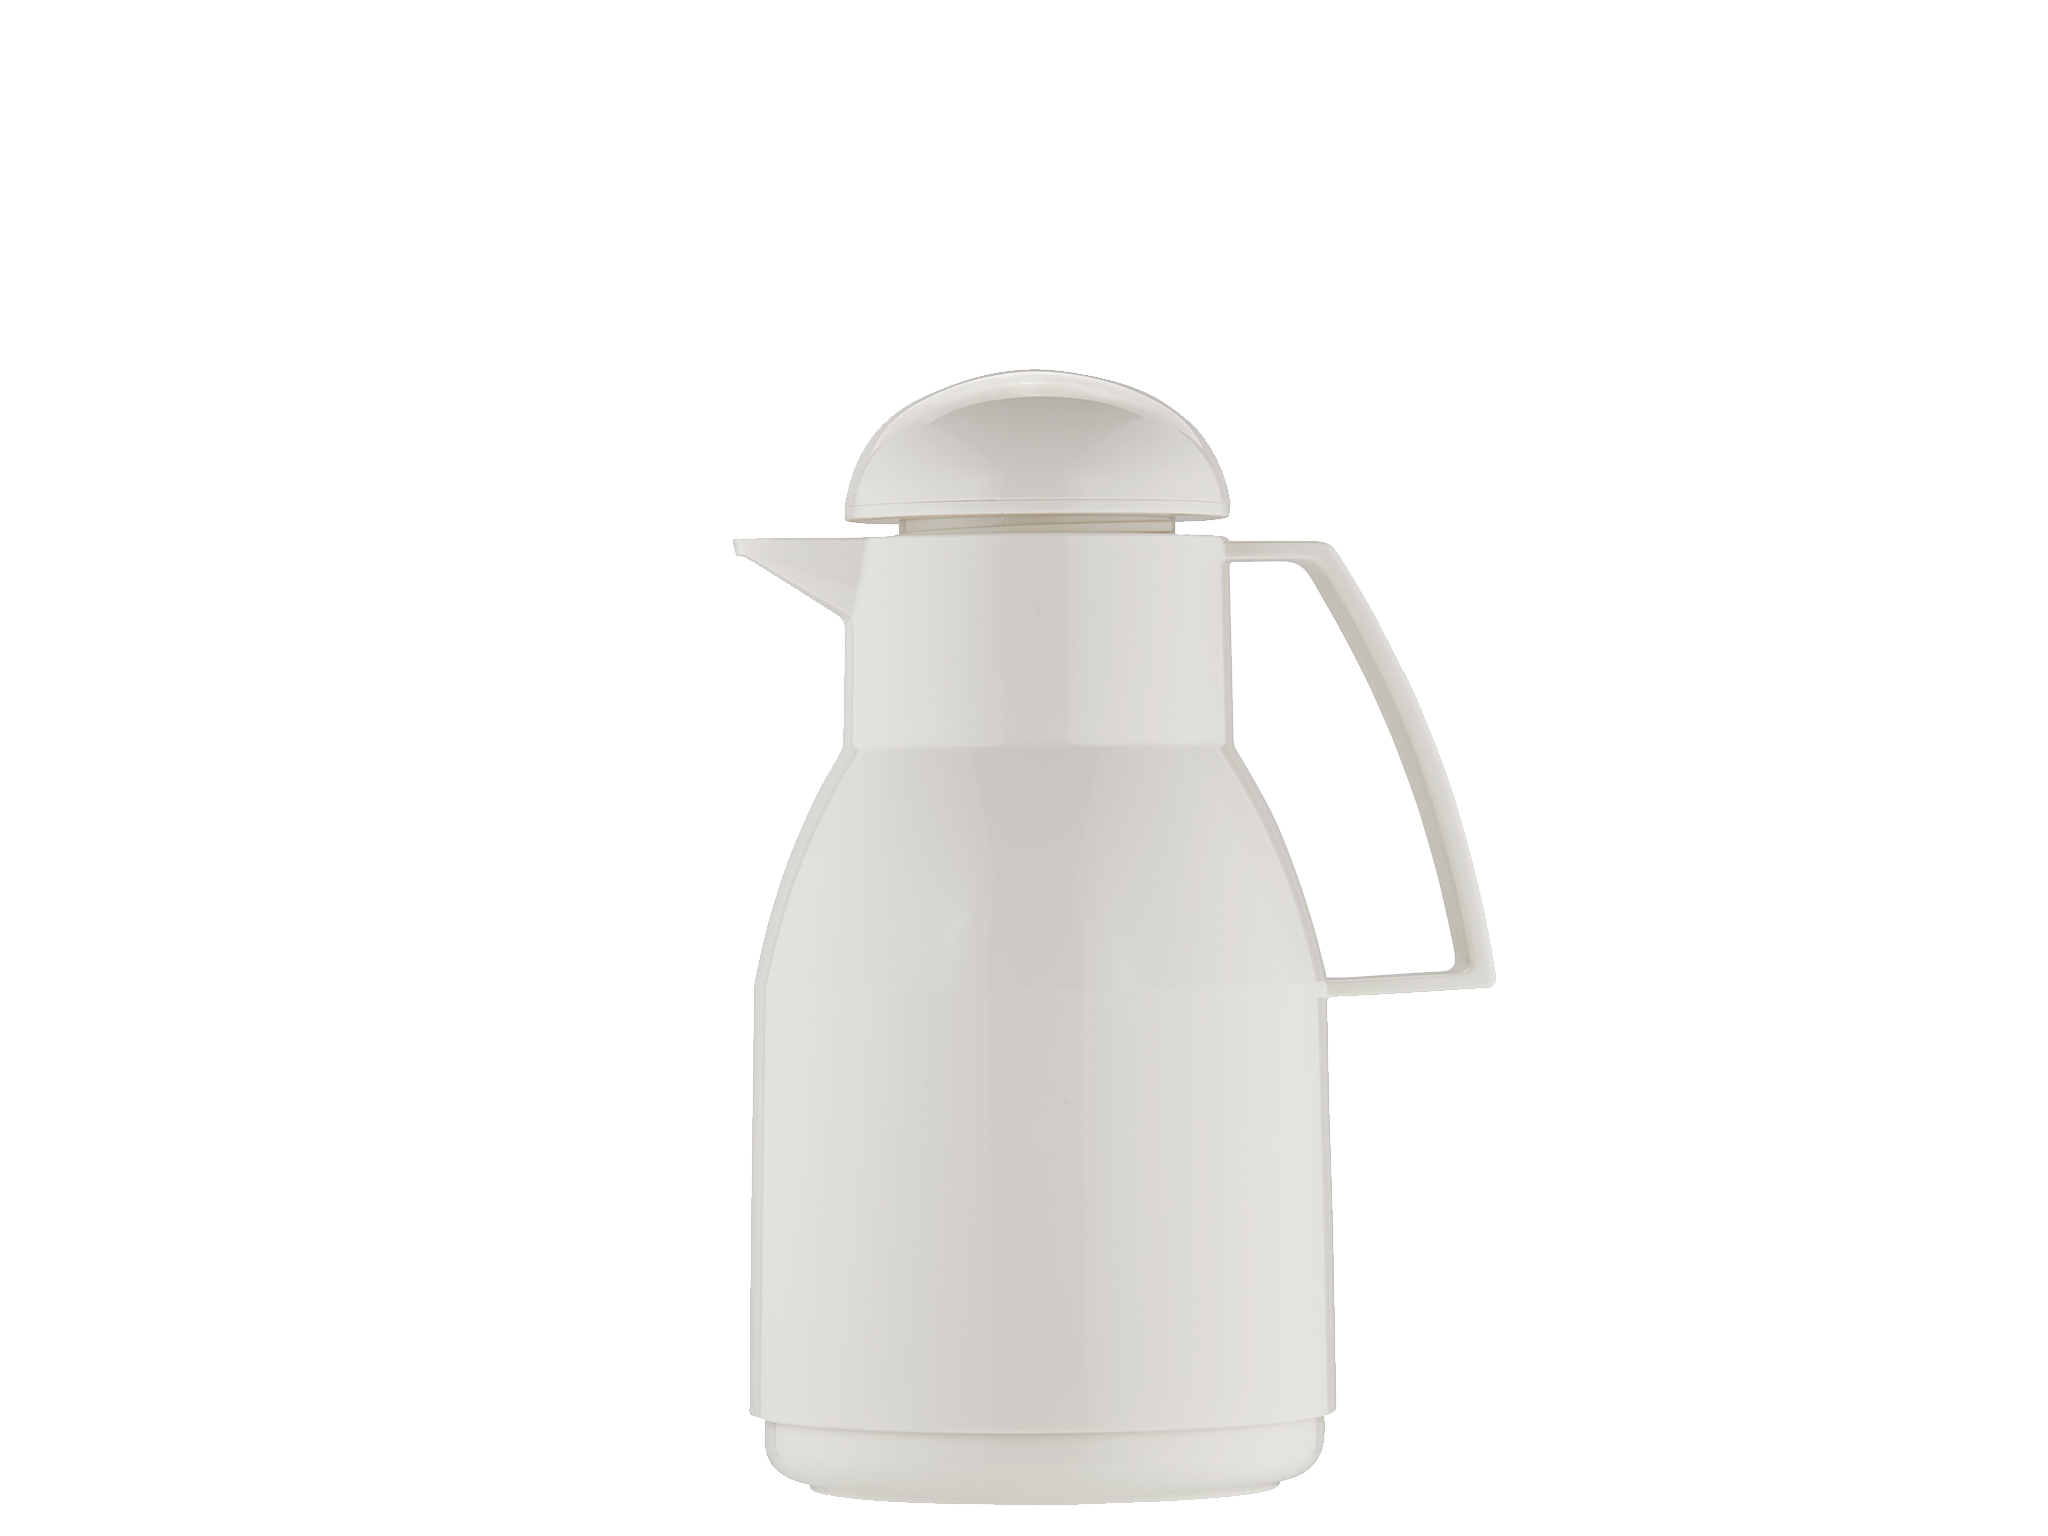 2734-001 - Pichet isotherme blanc 1.0 L TOP - Helios